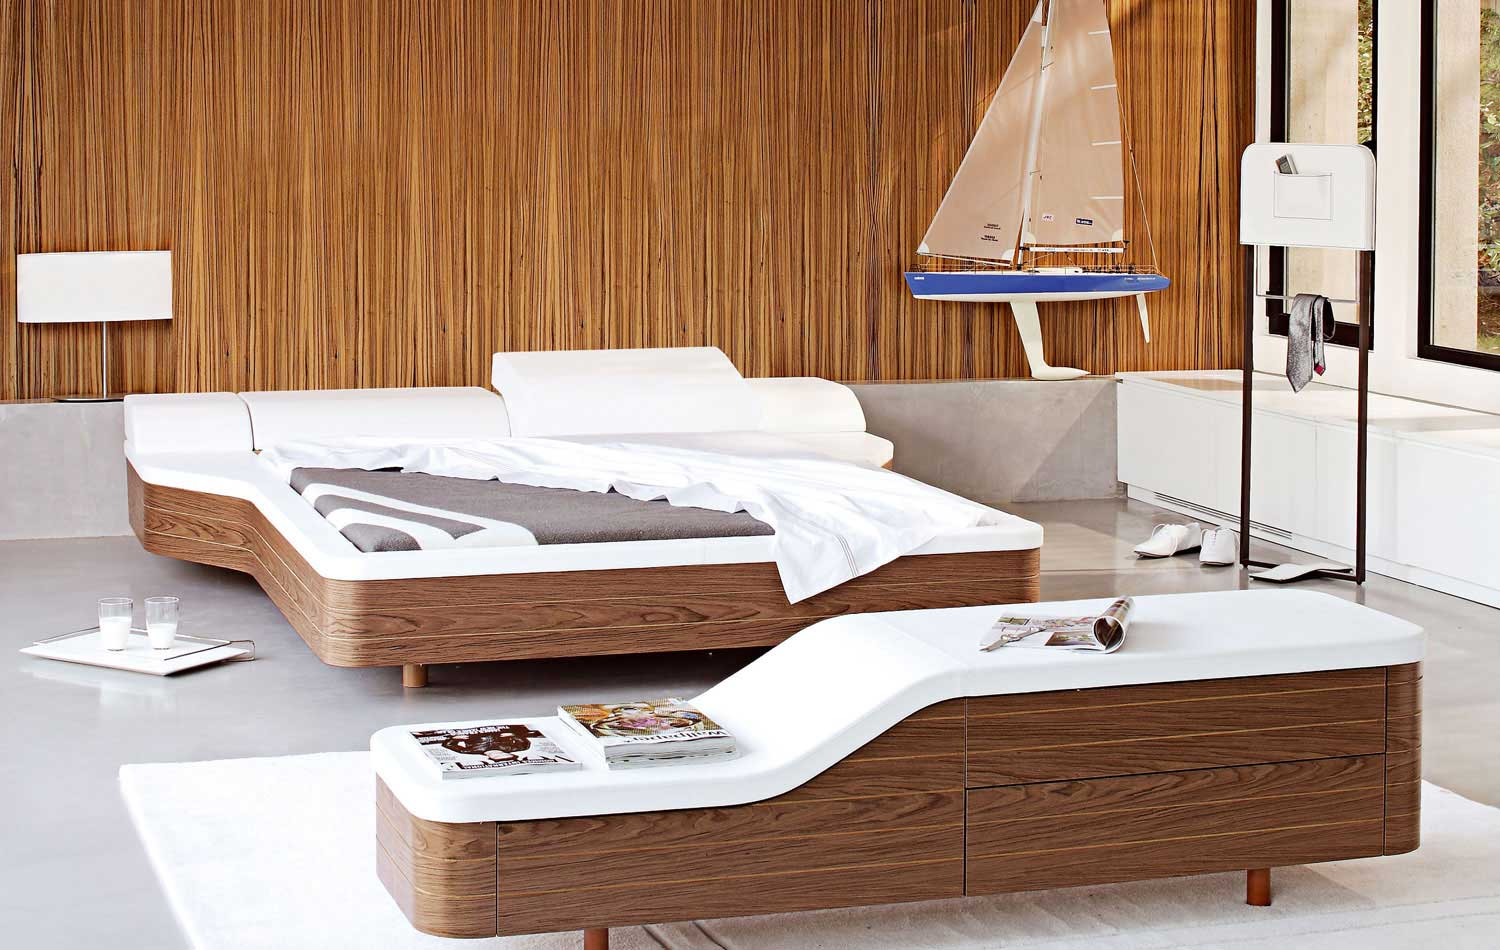 Meuble Cot Bedroom Inspiration 20 Modern Beds By Roche Bobois